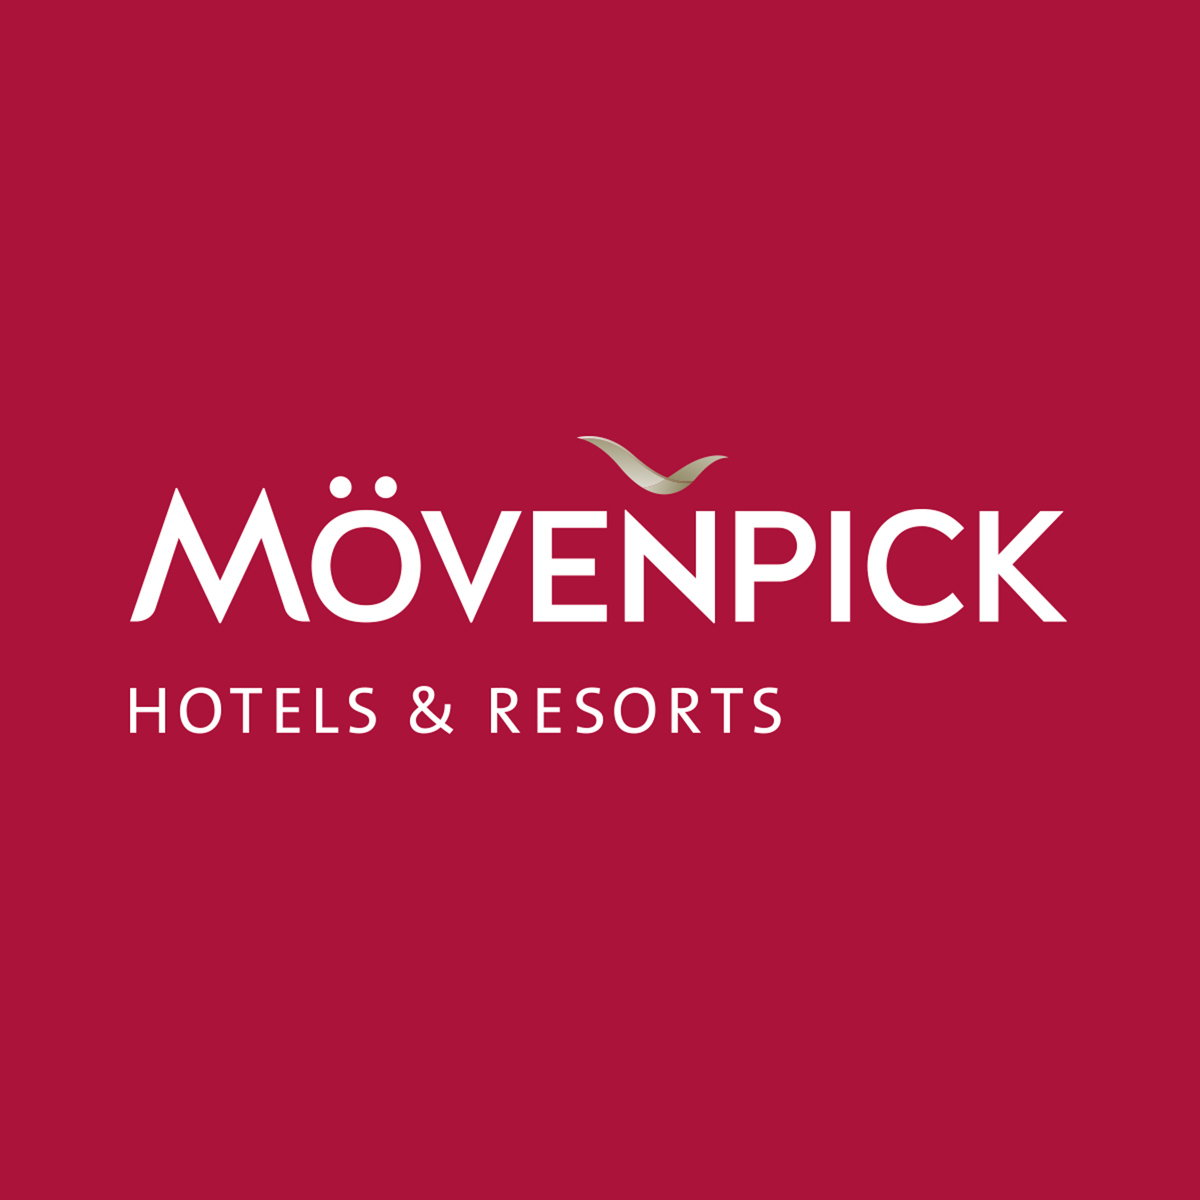 Bulletproof Creates New Corporate Identity for Mövenpick Hotels and Resorts